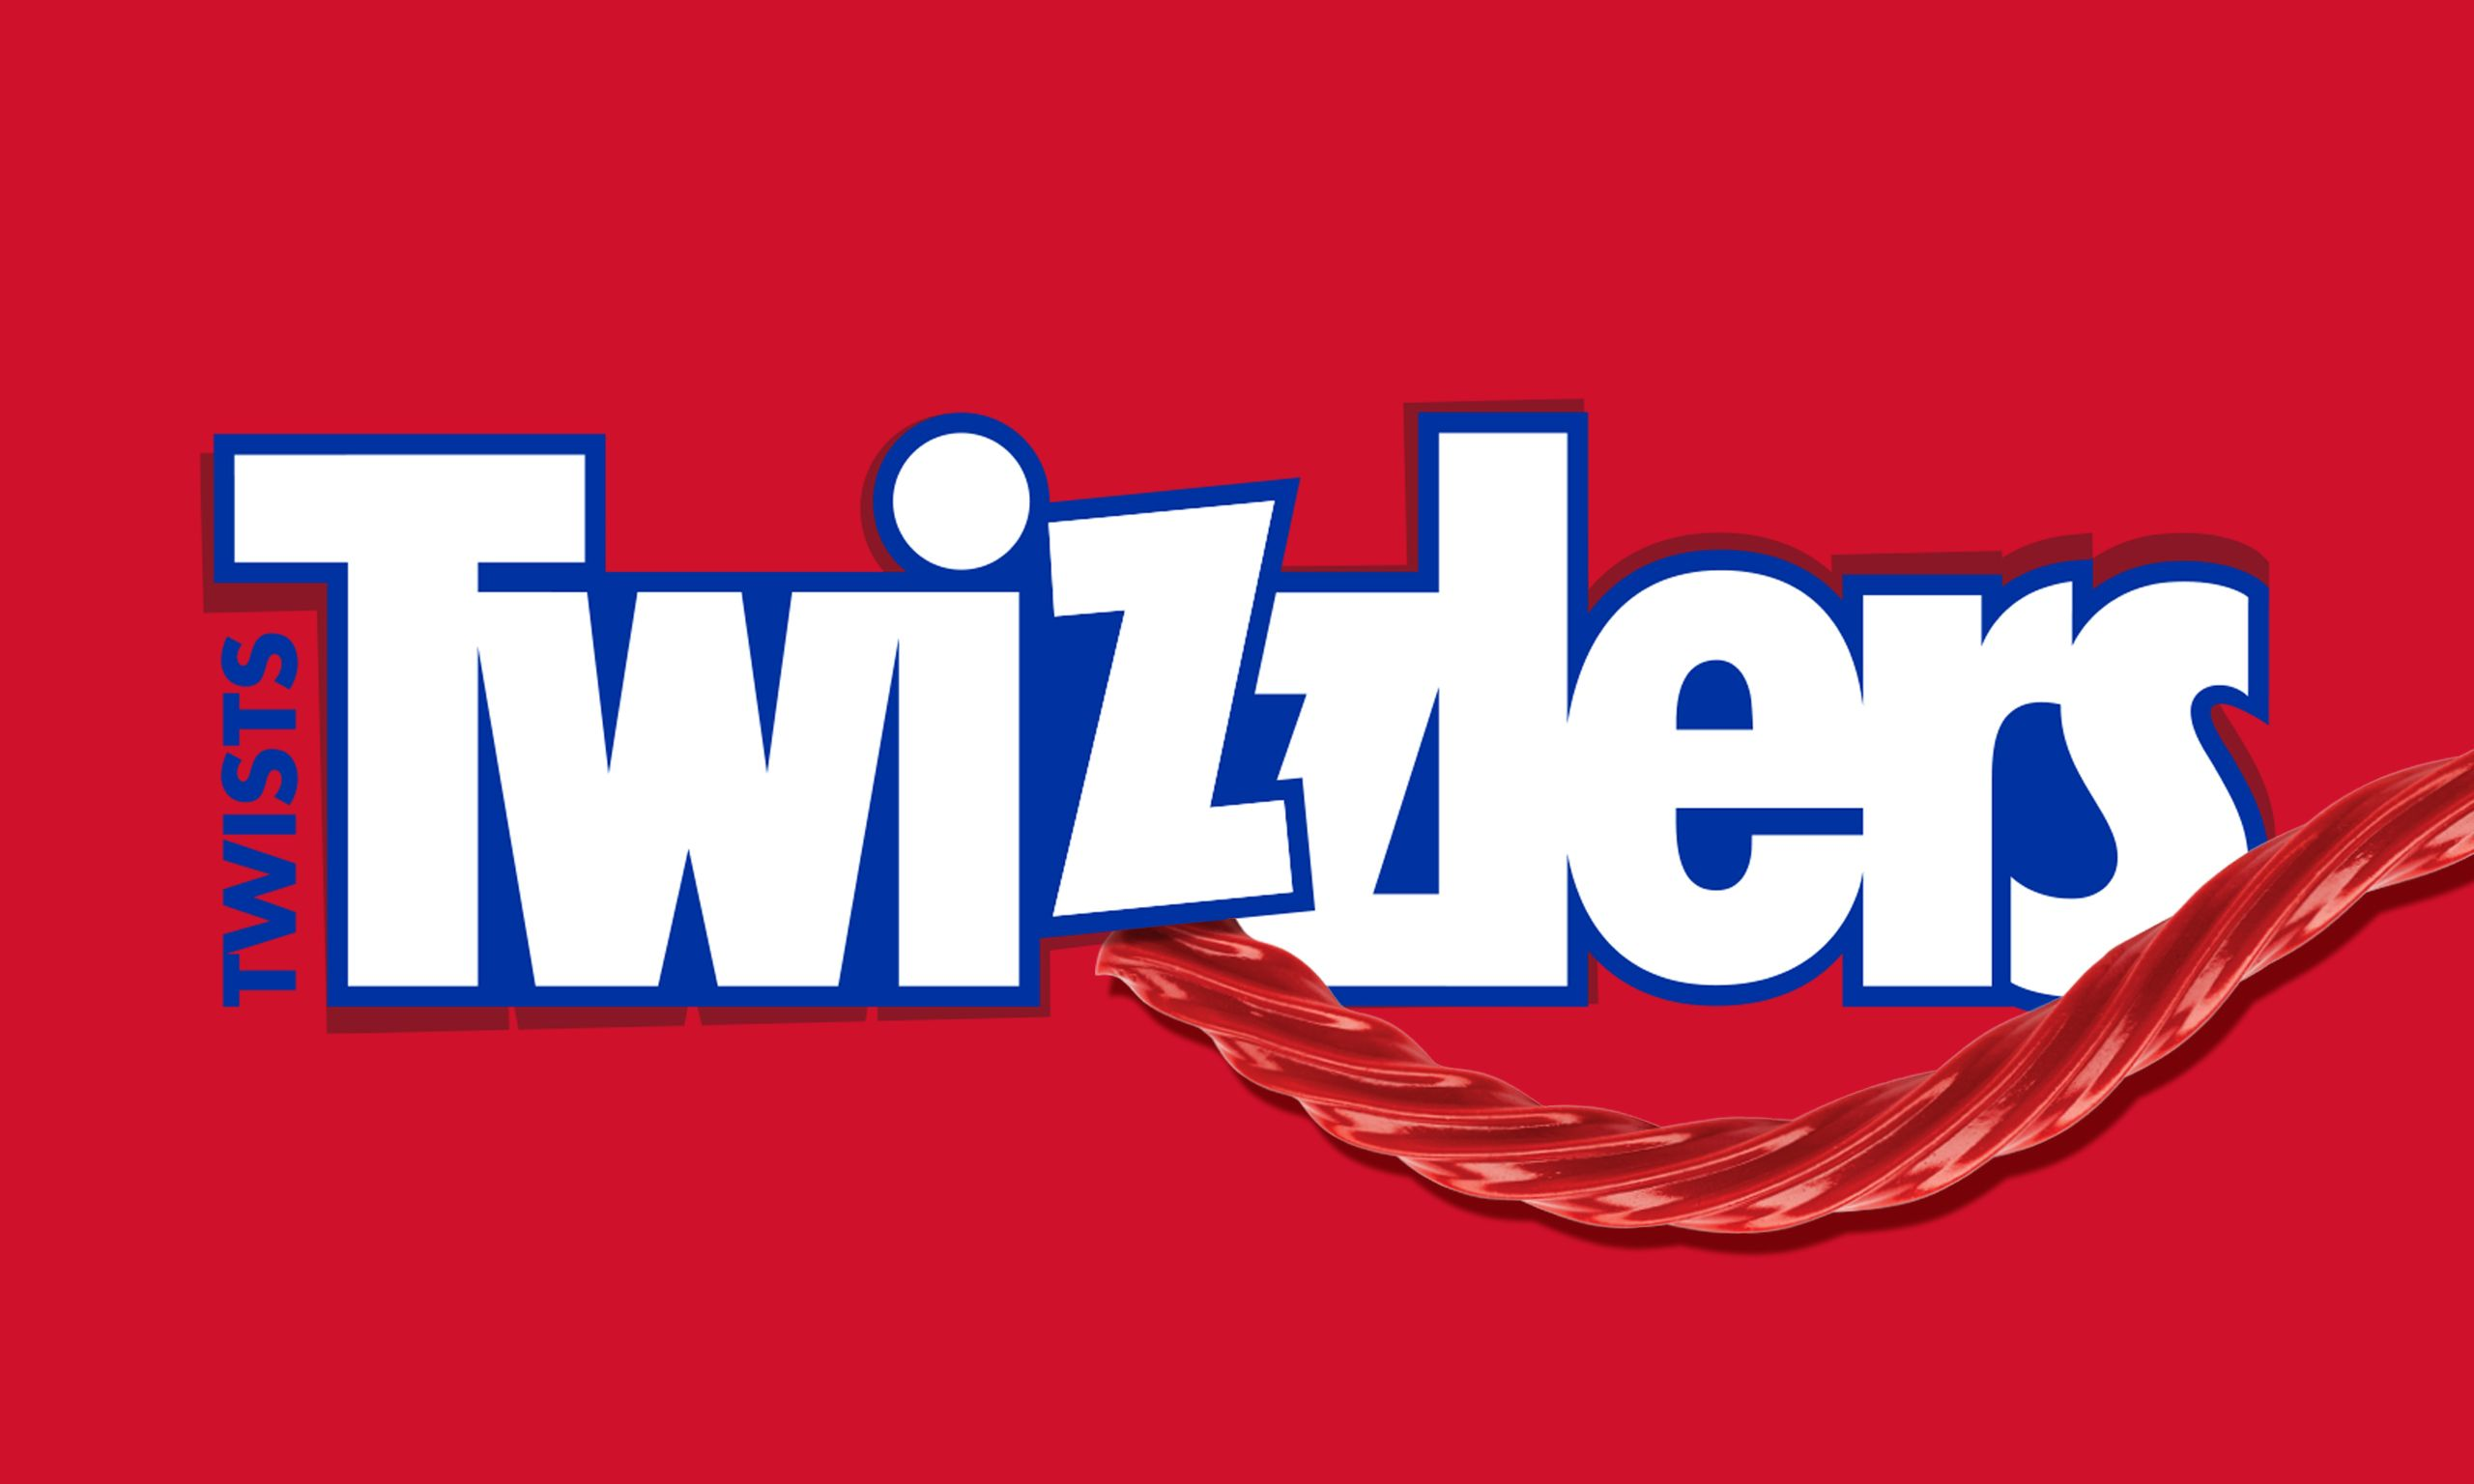 Twizzlers Logo - Twizzlers - Sterling Brands